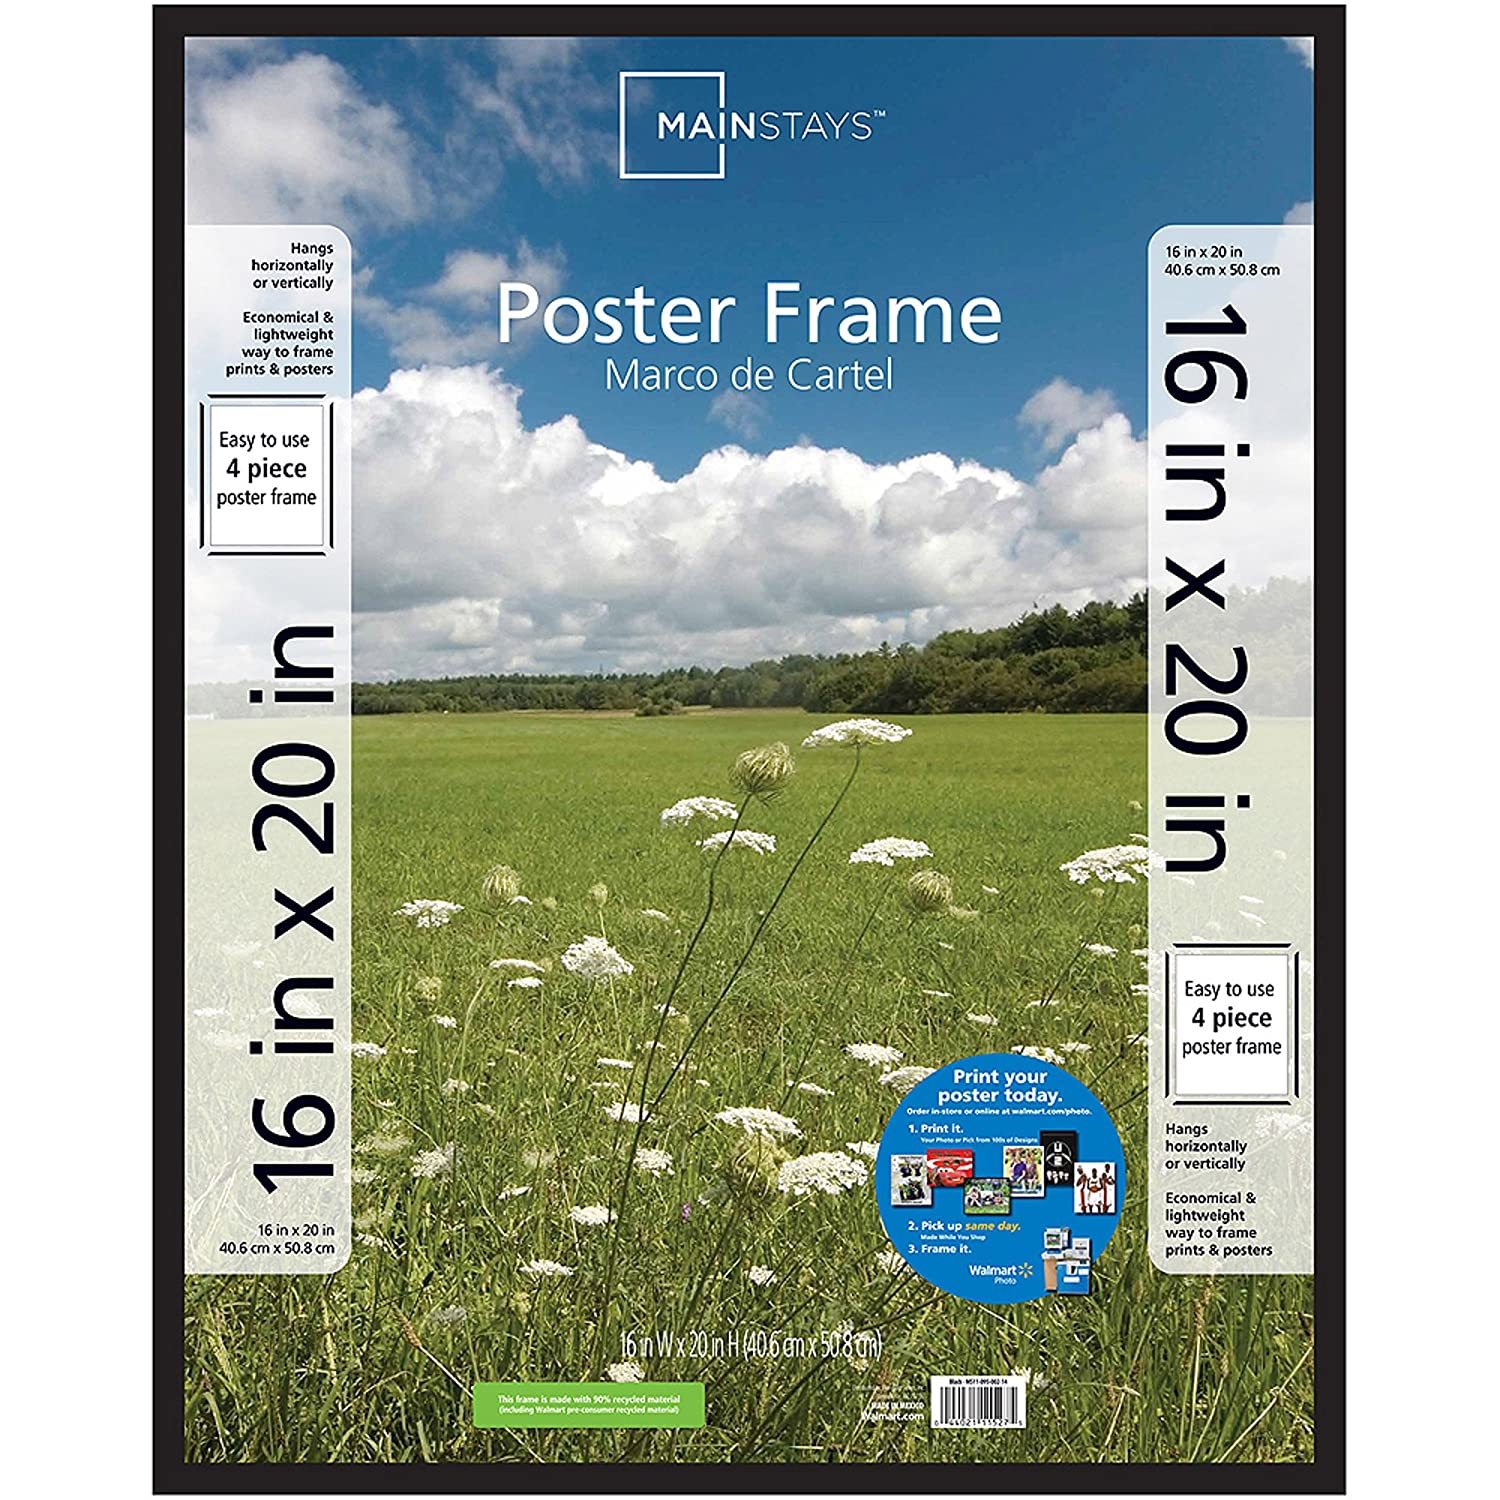 Amazon.com: Mainstays 16x20 Basic Black Poster Frame: Posters & Prints